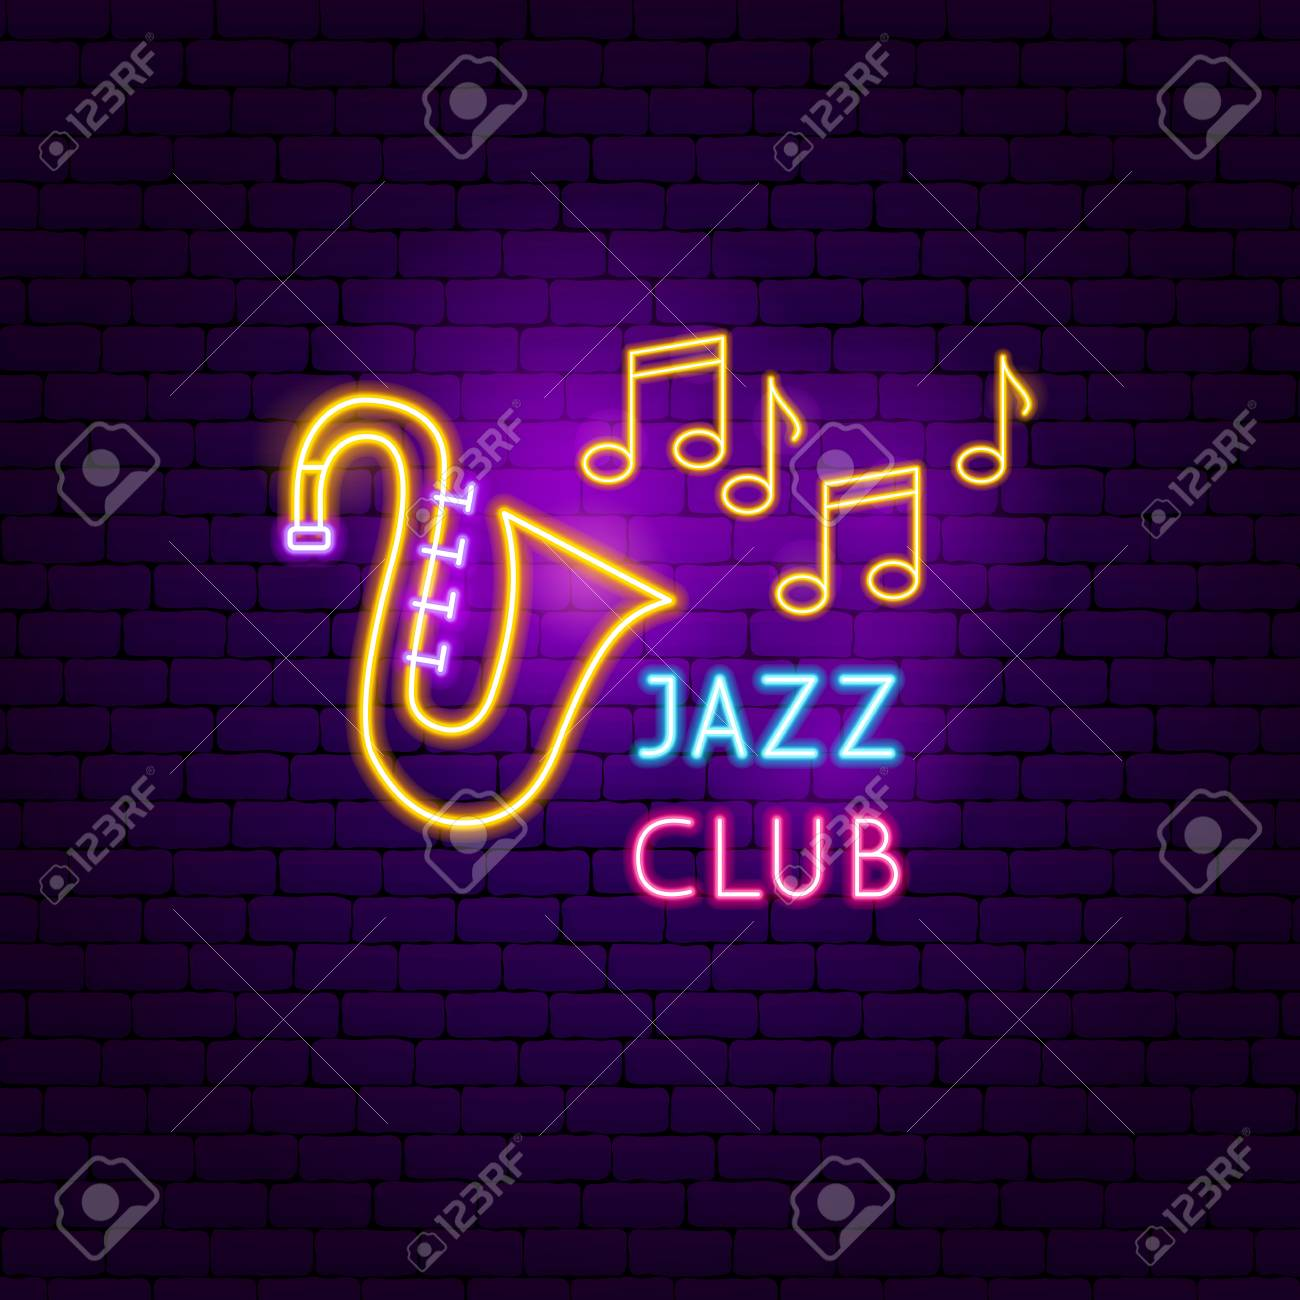 Jazz Club Neon Sign  Vector Illustration of Music Promotion